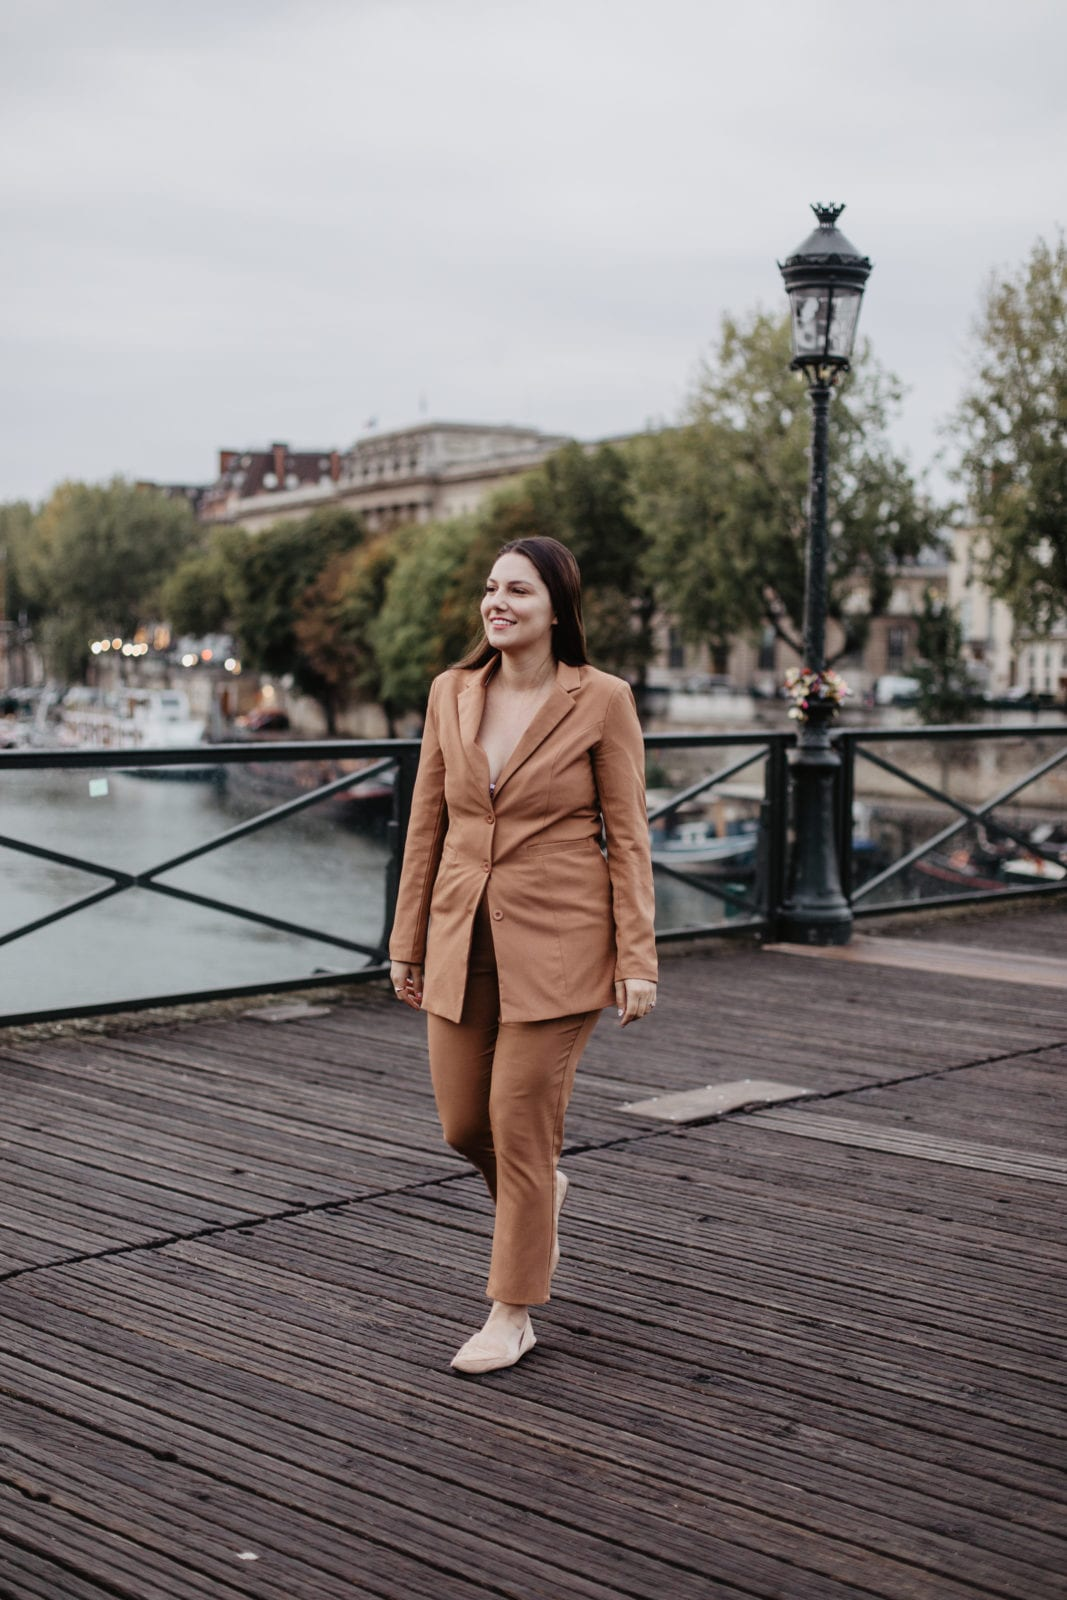 In this photo, I am walking down Pond des Arts in Paris, France while wearing a camel colored full suit from In The Style.